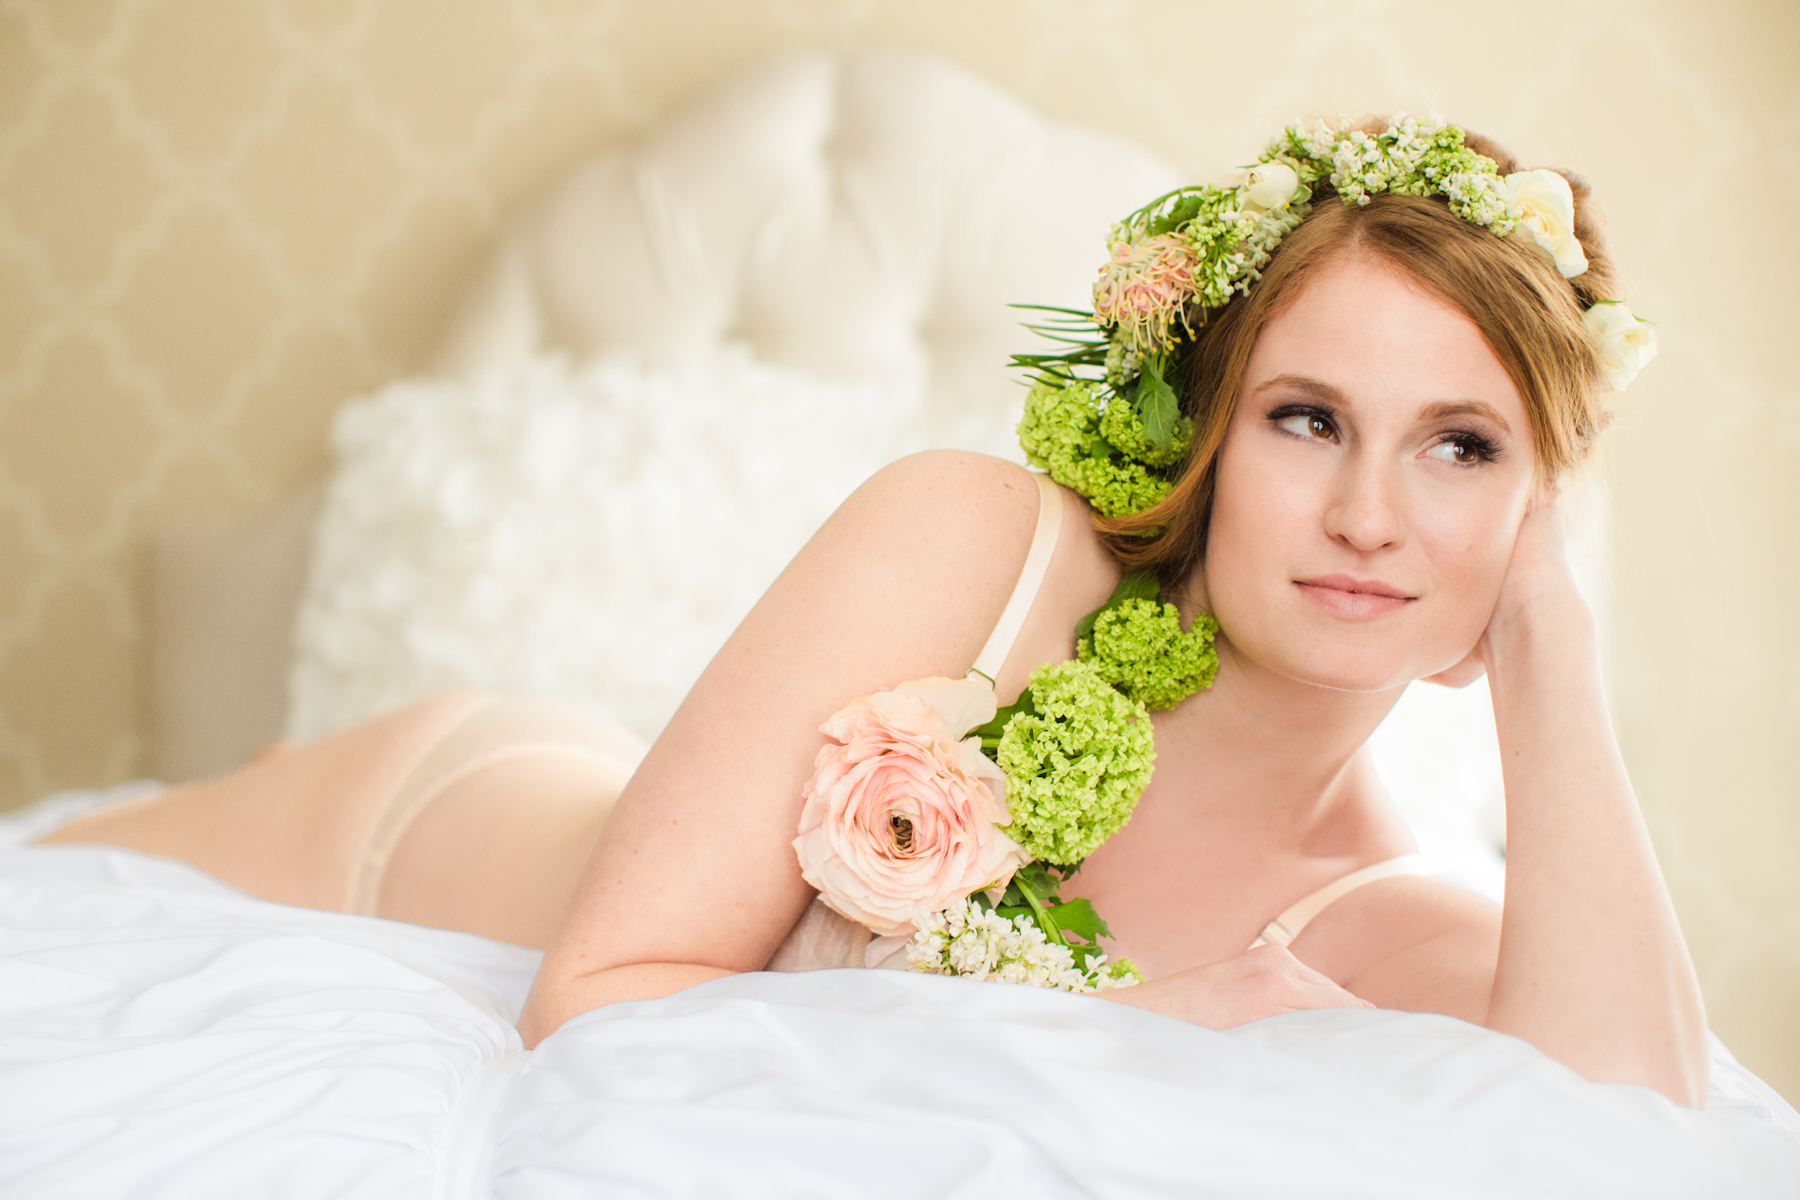 Stacy K Floral and Natalie Sinisgalli Photography floral headpiece for boudoir shoot